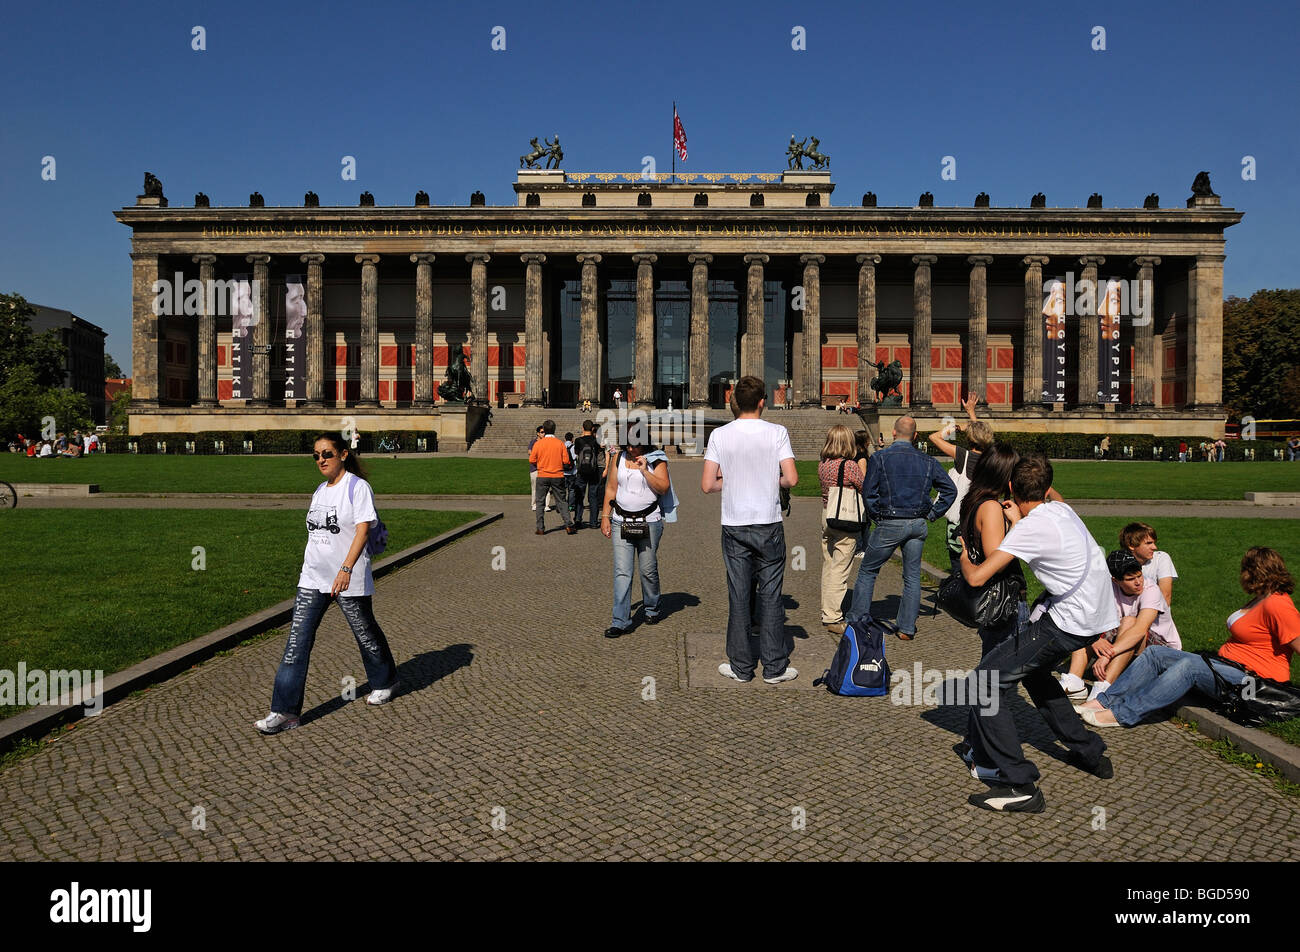 Altes Museum, Lustgarten, Unter den Linden, Berlin, Germany, Europe. - Stock Image